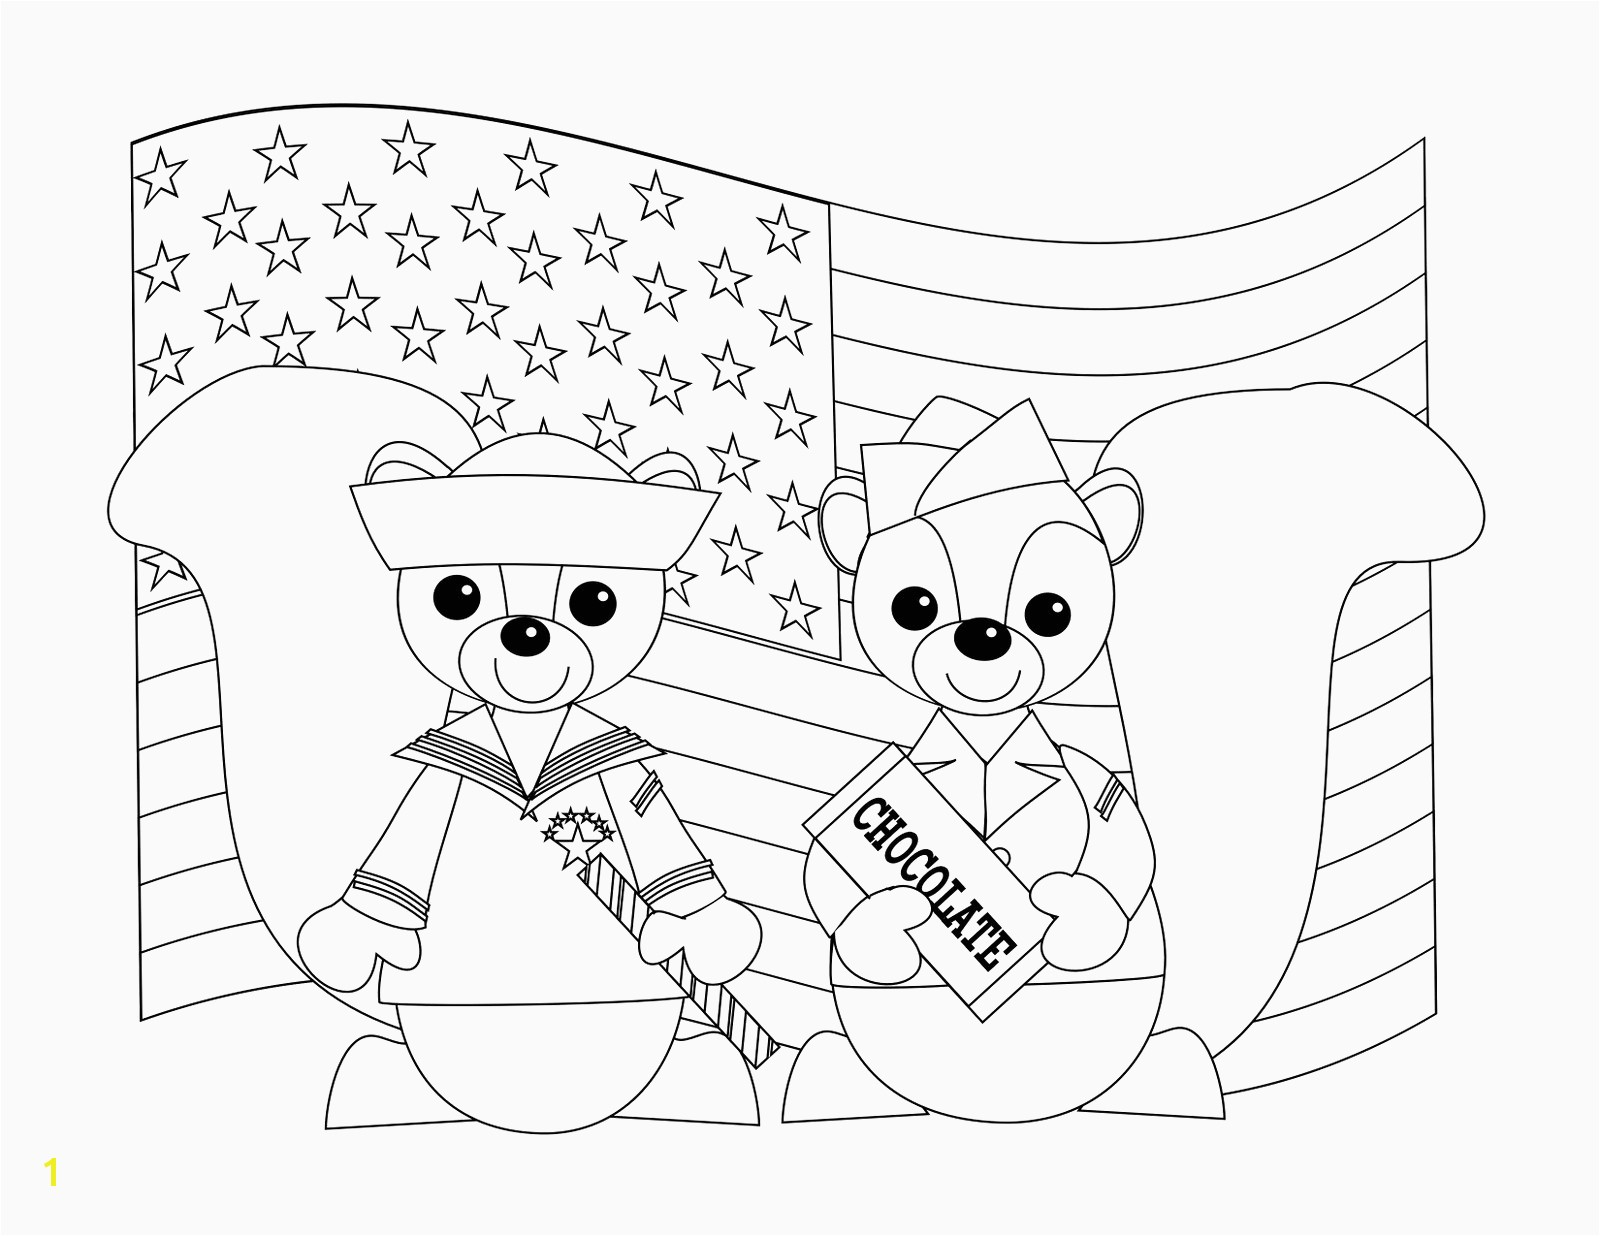 Halloween Coloring Pages for Boys Free Best Coloring Page Adult Od Kids Simple Stock Vector – Fun Time